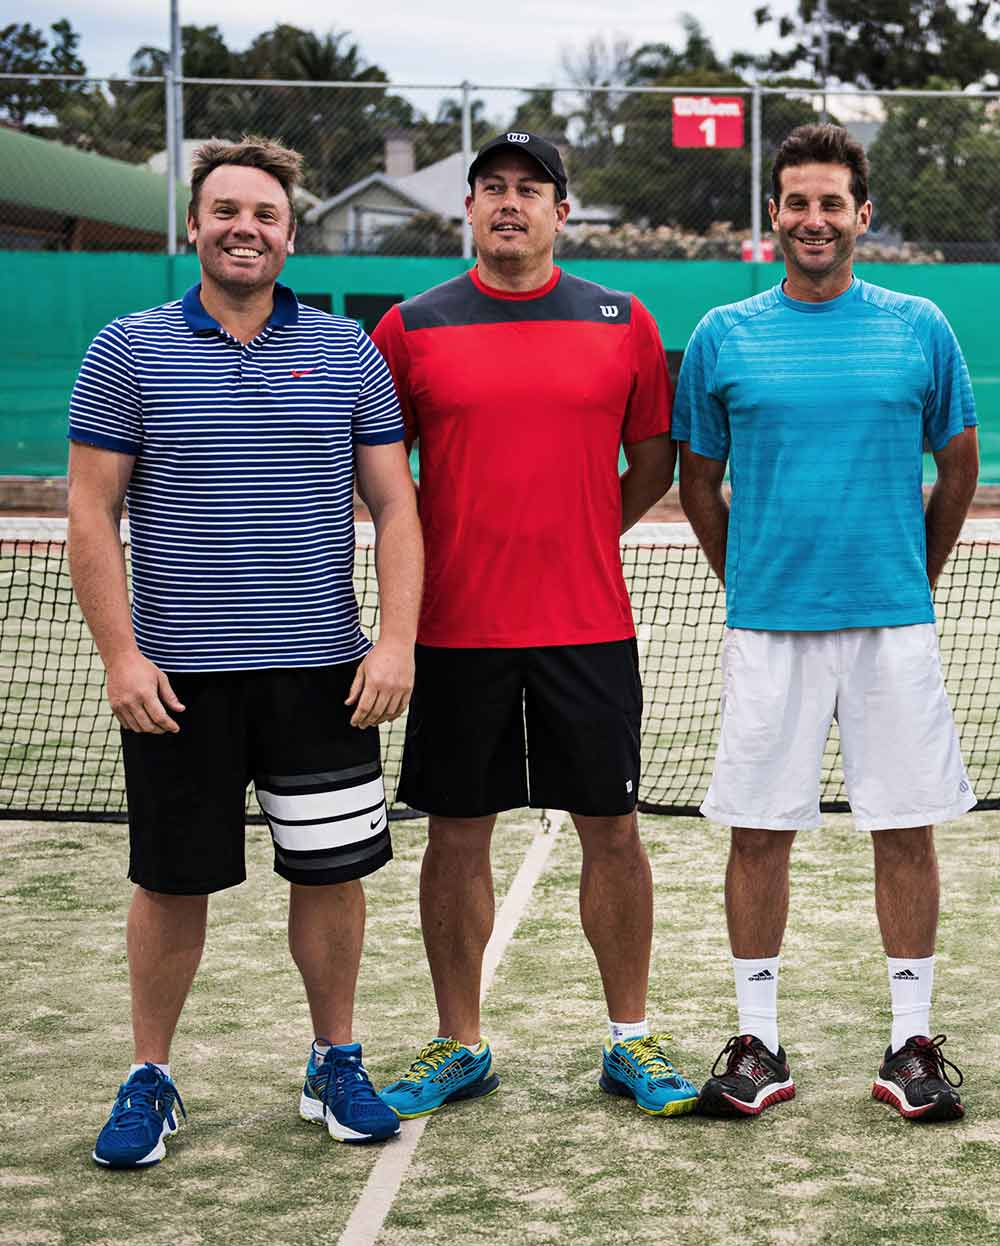 Tennis Group Coaching Sydney